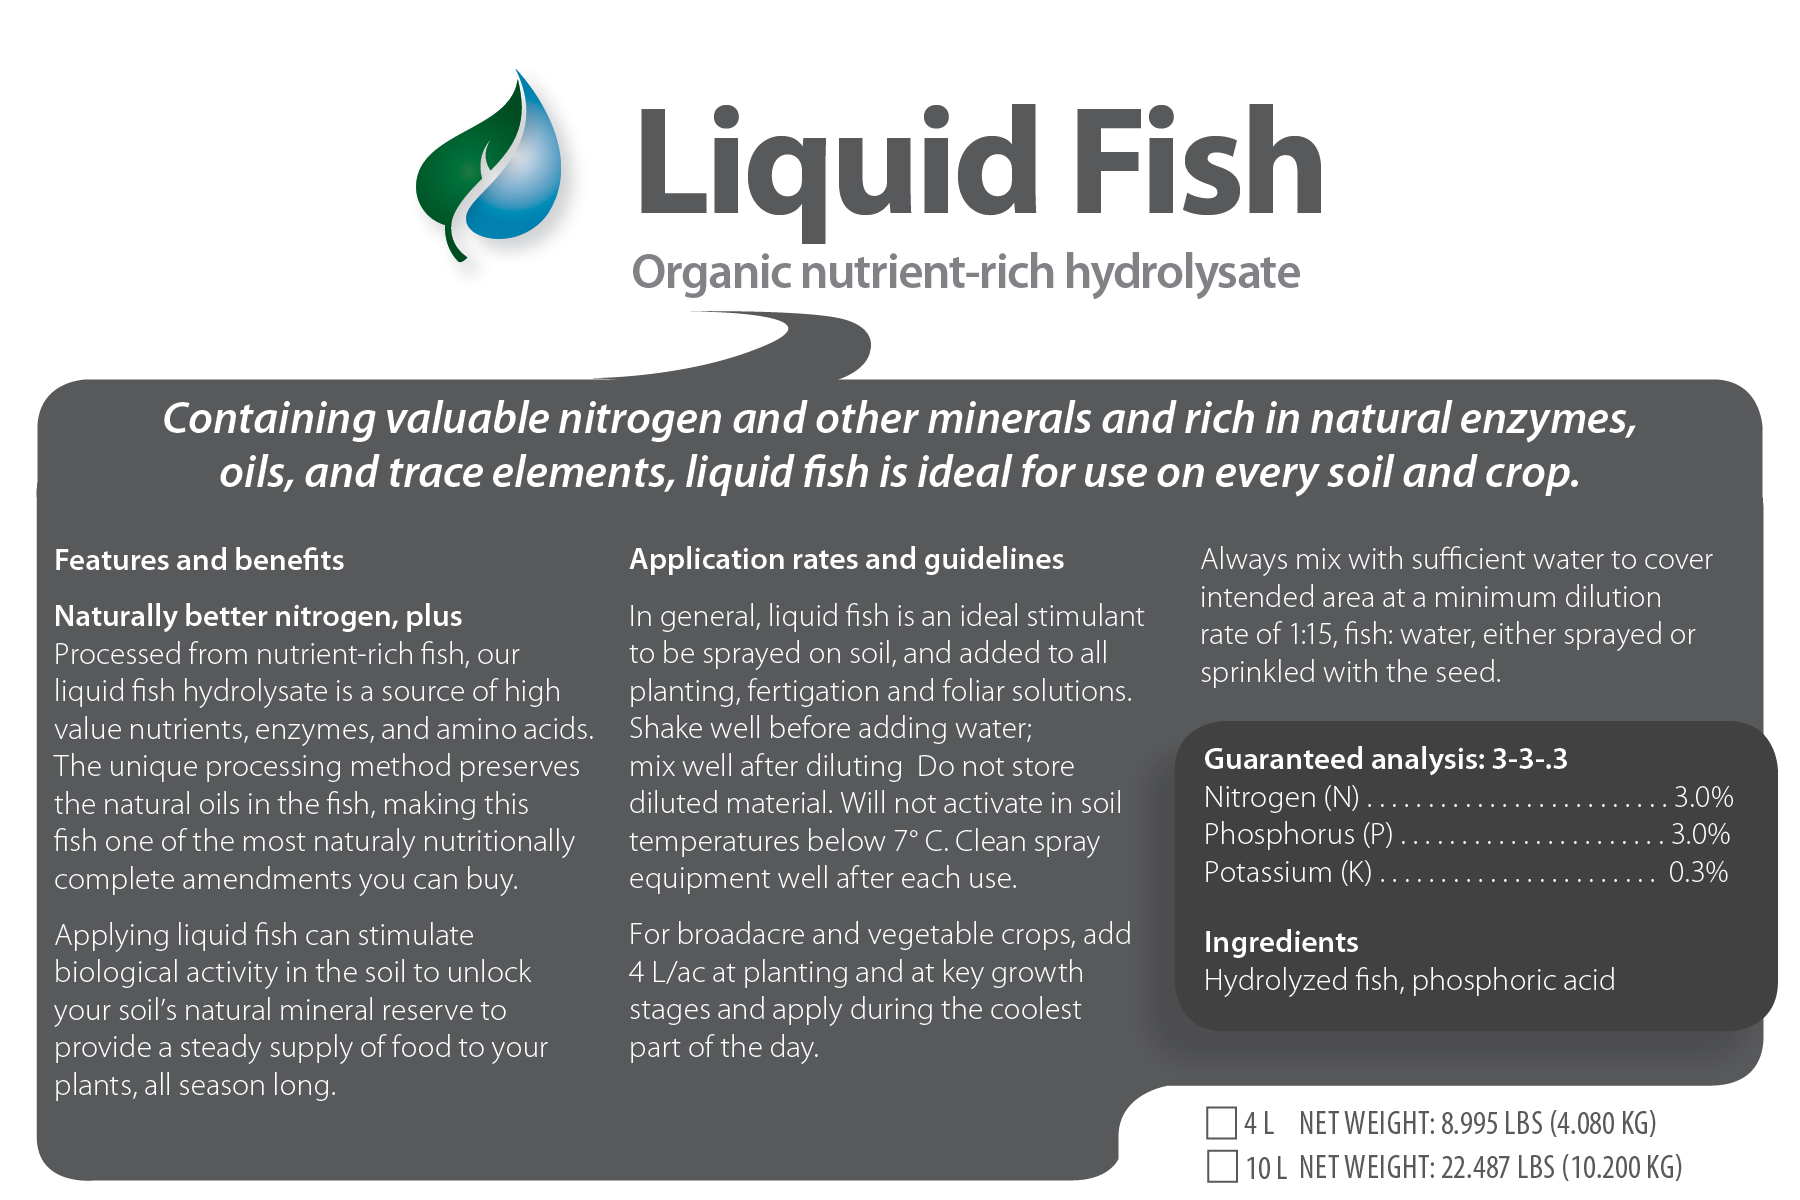 Liquid Fish Hydrolysate